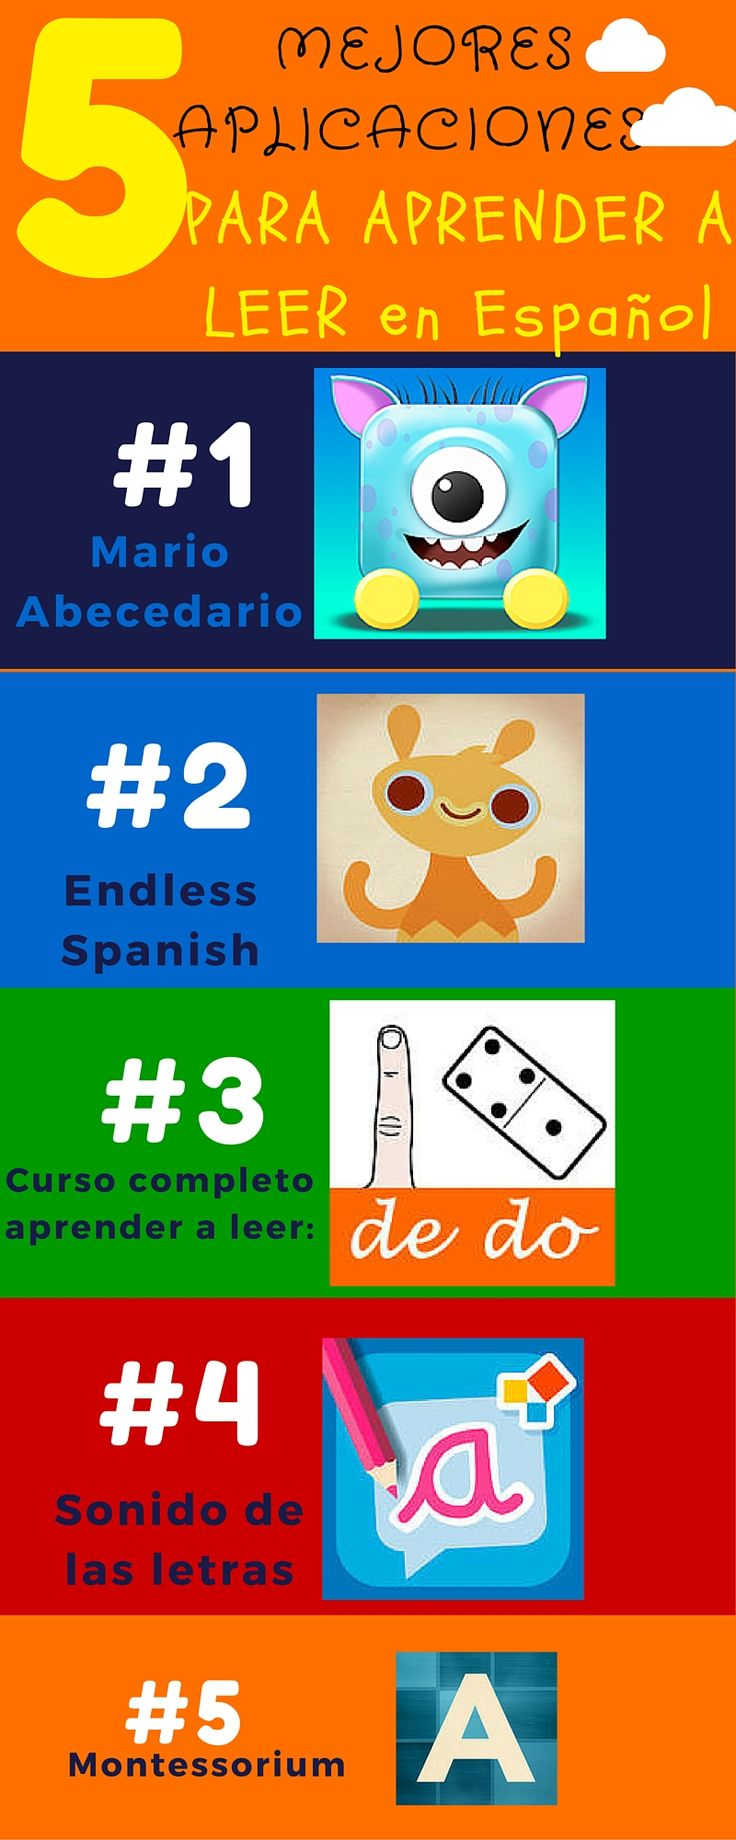 5 aplicaciones para aprender a leer #1 Mario Abecedario : ios: https://itunes.apple.com/es/app/mario-s-alphabet-learn-to/id1032355409?mt=8 android: https://play.google.com/store/apps/details?id=com.tucan.mario&hl=es_419